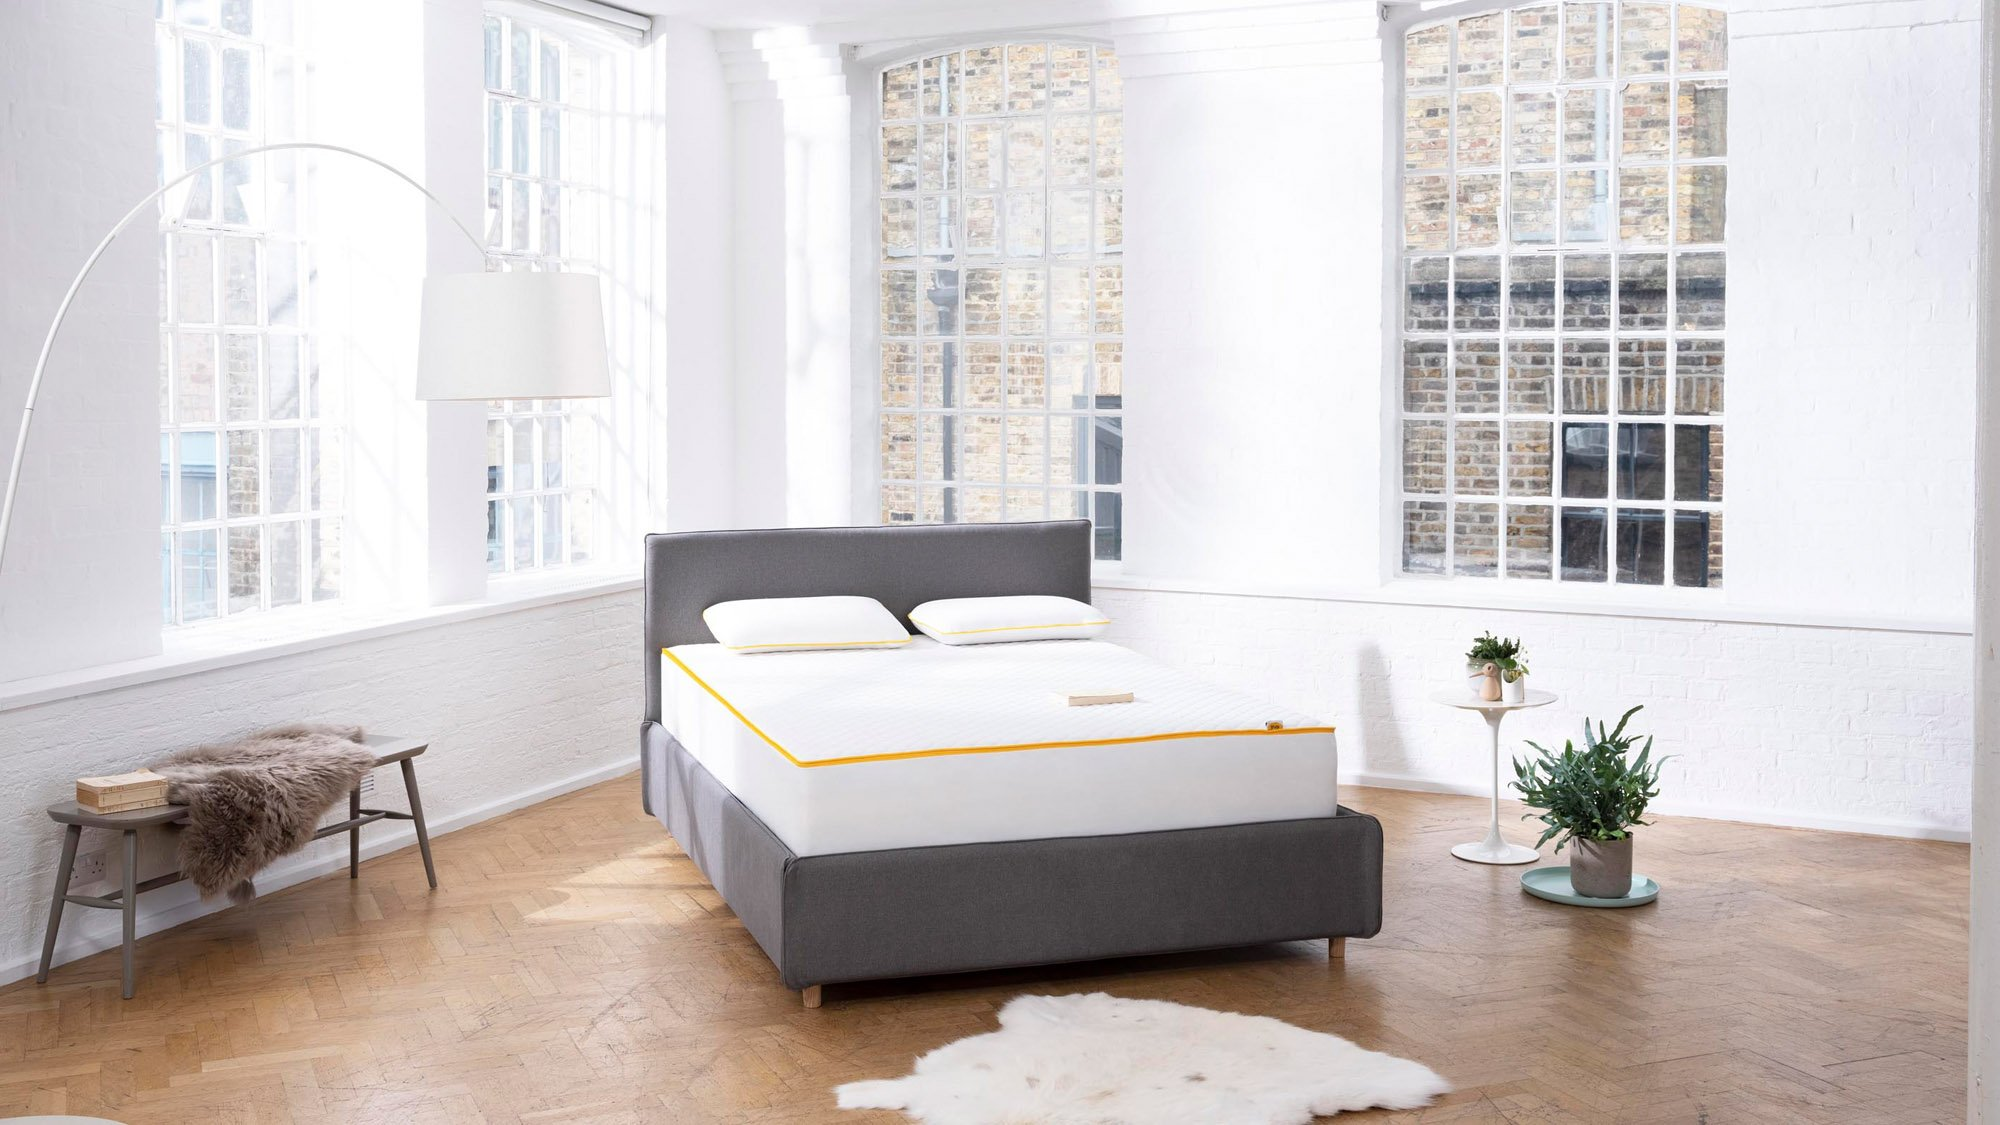 eve premium mattress review worth paying extra for. Black Bedroom Furniture Sets. Home Design Ideas